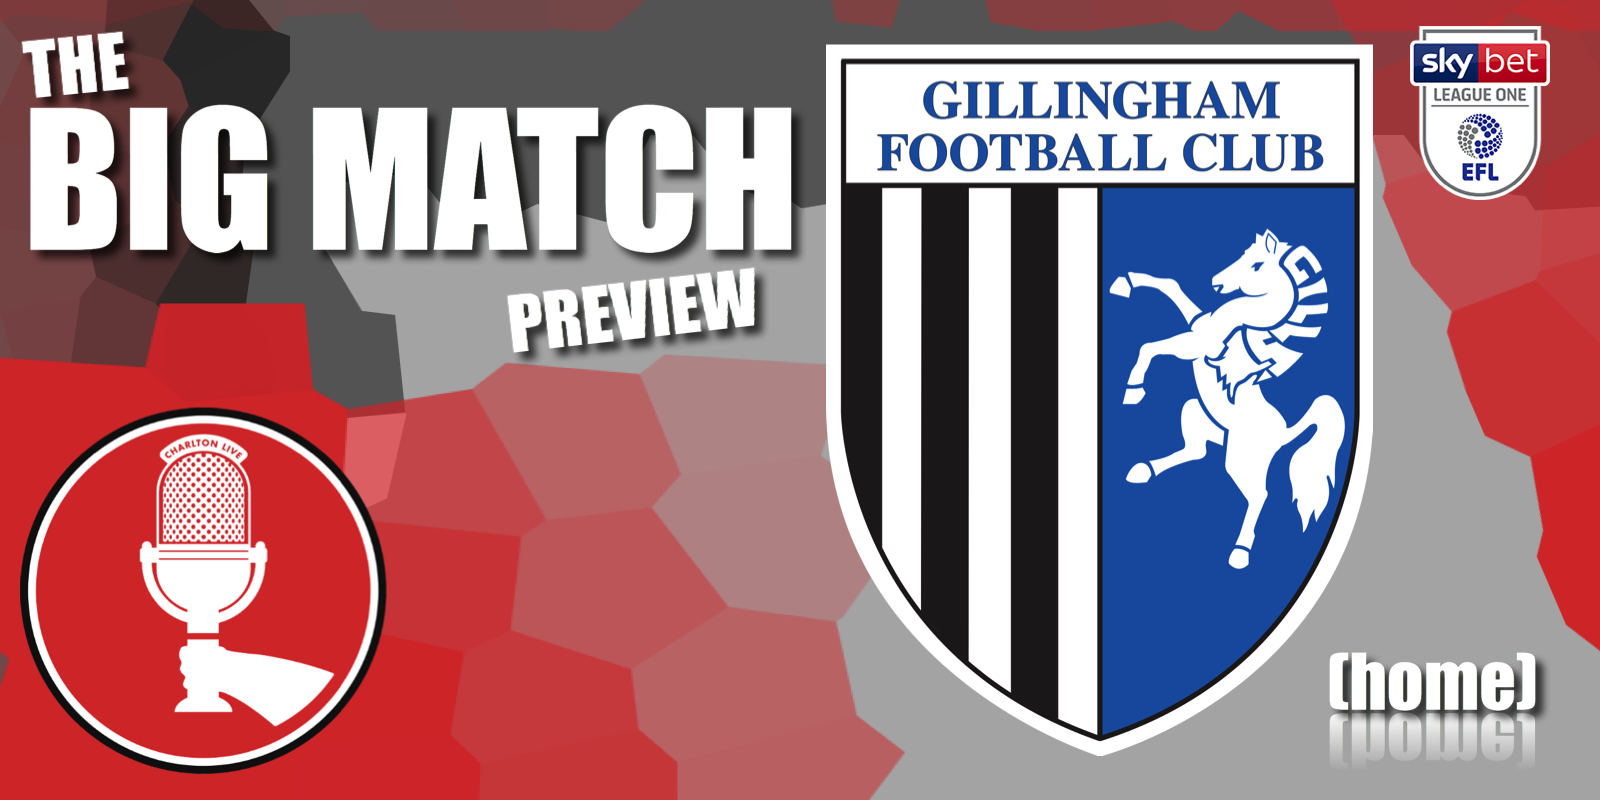 Big Match Preview – Gillingham at home 2020-21